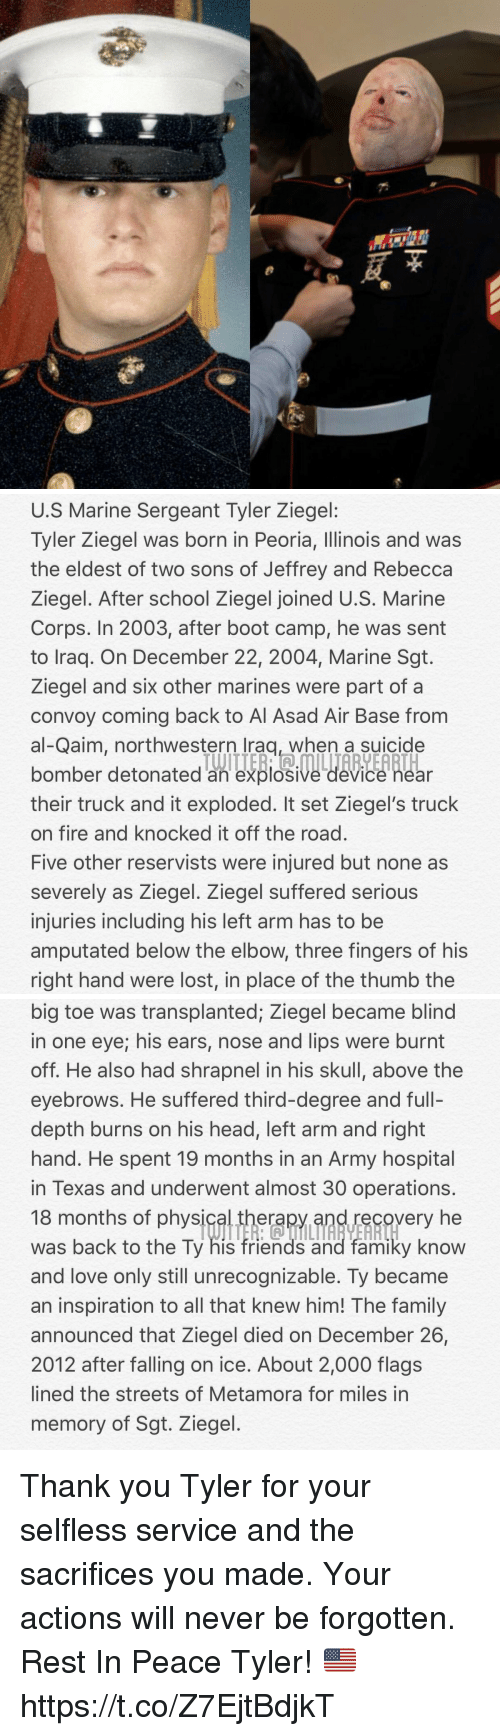 physic: U.S Marine Sergeant Tyler Ziegel:  lyler Ziegel was born in Peoria, llinois and was  the eldest of two sons of Jeffrey and Rebecca  Ziegel. After school Ziegel joined U.S. Marine  Corps. In 2003, after boot camp, he was sent  to Iraq. On December 22, 2004, Marine Sgt.  Ziegel and six other marines were part of a  convoy coming back to Al Asad Air Base from  al-Qaim, northwestern lraq, when a suicide  bomber detonated an explosive device near  their truck and it exploded. It set Ziegel's truck  on fire and knocked it off the road  Five other reservists were injured but none as  severely as Ziegel. Ziegel suffered serious  injuries including his left arm has to be  amputated below the elbow, three fingers of his  right hand were lost, in place of the thumb the  bomber detonated an explosive device Rear   big toe was transplanted; Ziegel became blind  in one eye; his ears, nose and lips were burnt  off. He also had shrapnel in his skull, above the  eyebrows. He suffered third-degree and full-  depth burns on his head, left arm and right  hand. He spent 19 months in an Army hospital  in Texas and underwent almost 30 operations  18 months of physic  was back to the Ty his friends and famiky know  and love only still unrecognizable. Ty became  an inspiration to all that knew him! The family  announced that Ziegel died on December 26,  2012 after falling on ice. About 2,000 flags  lined the streets of Metamora for miles in  memory of Sgt. Ziegel  erapy and recovery he Thank you Tyler for your selfless service and the sacrifices you made. Your actions will never be forgotten. Rest In Peace Tyler! 🇺🇸 https://t.co/Z7EjtBdjkT